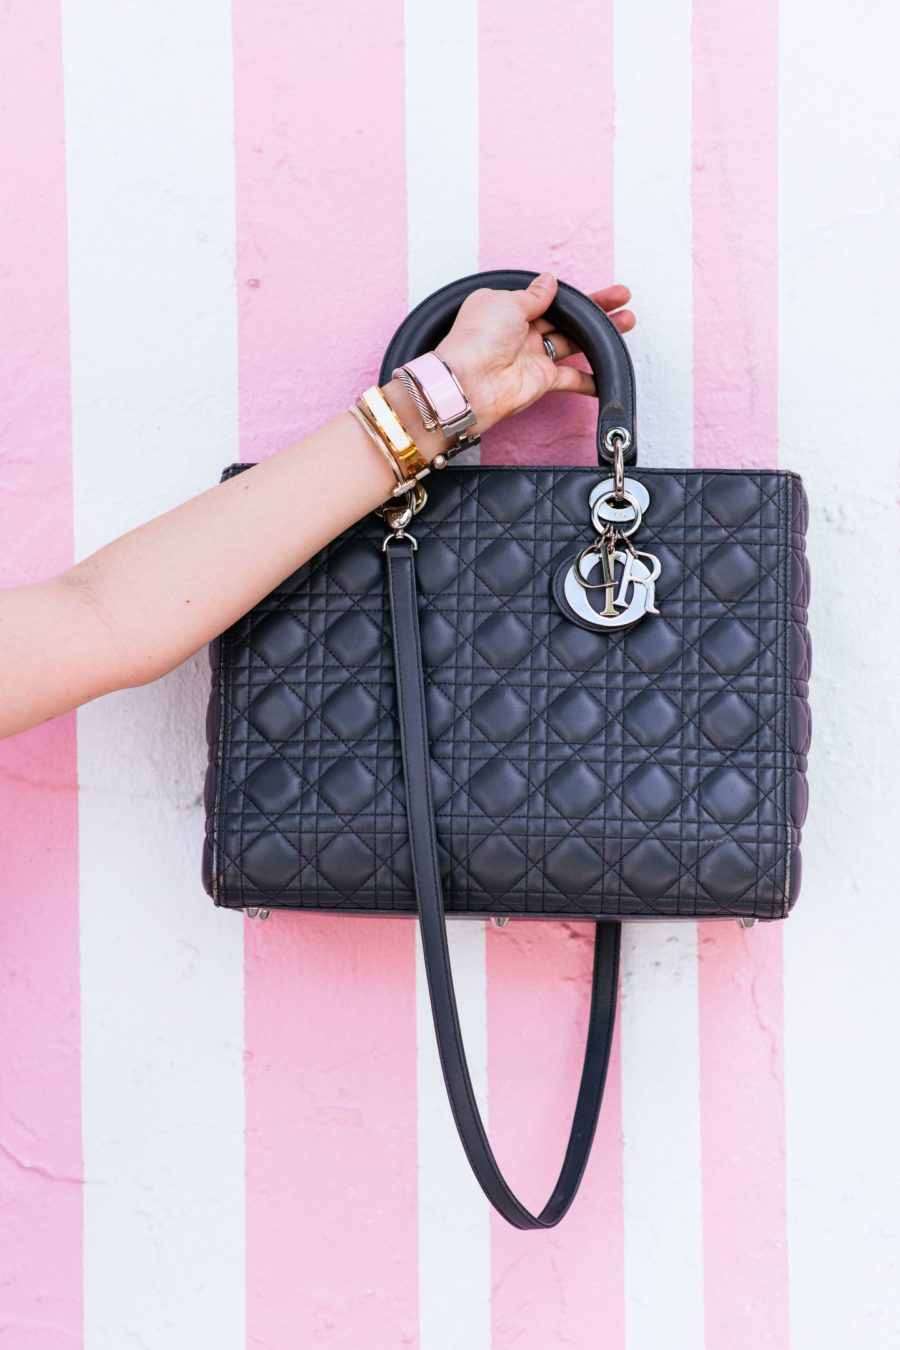 36e165ed23b521 How to purchase designer handbags on a budget - Curated by Kirsten